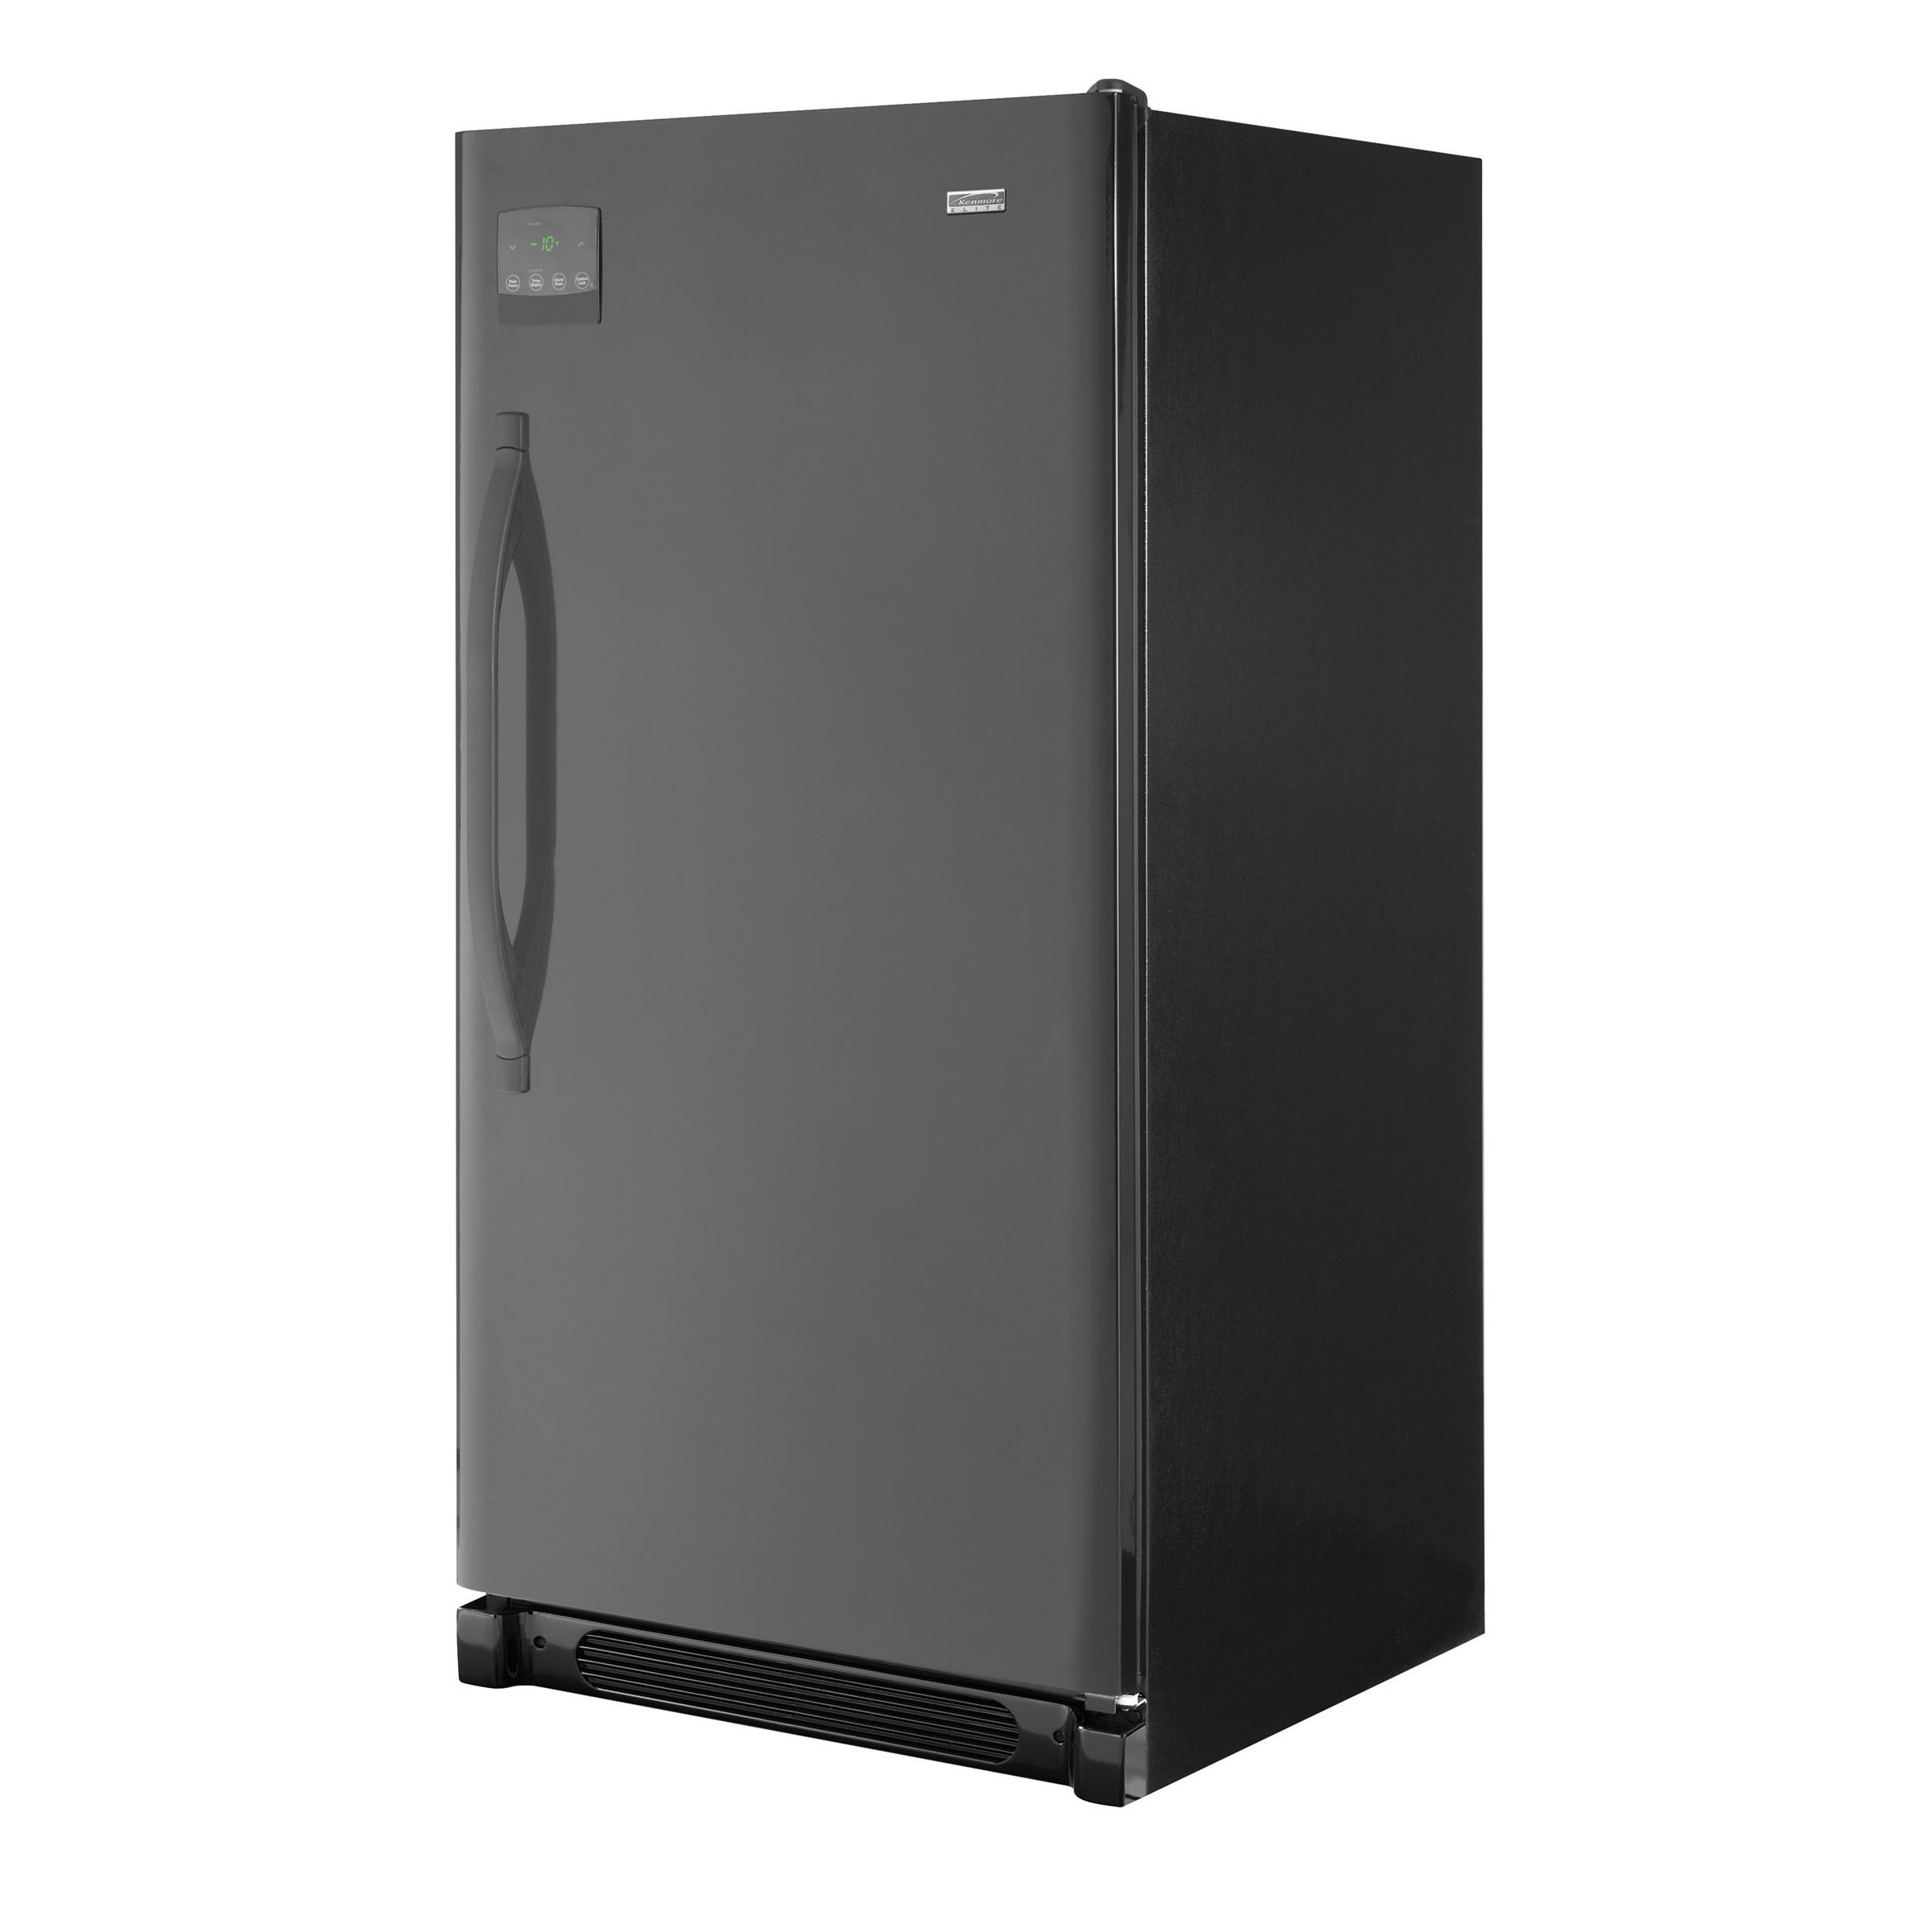 Kenmore 28459 13.7 Cu. Ft. Upright Freezer